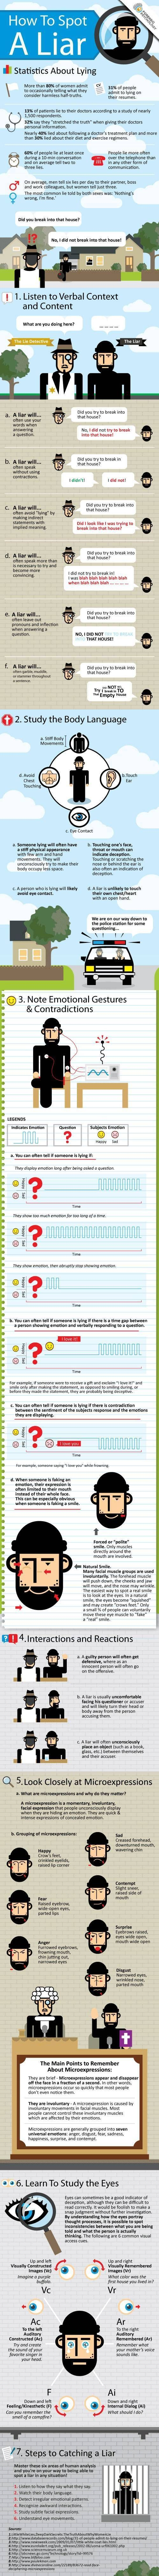 Psychology infographic and charts telltale-signs-someone-is-lying I am one to pay attention to body language and … Infographic Description telltale-signs-someone-is-lying I am one to pay attention to body language and I often know when Im being lied to…I just don't... - #Psychologyinfographics